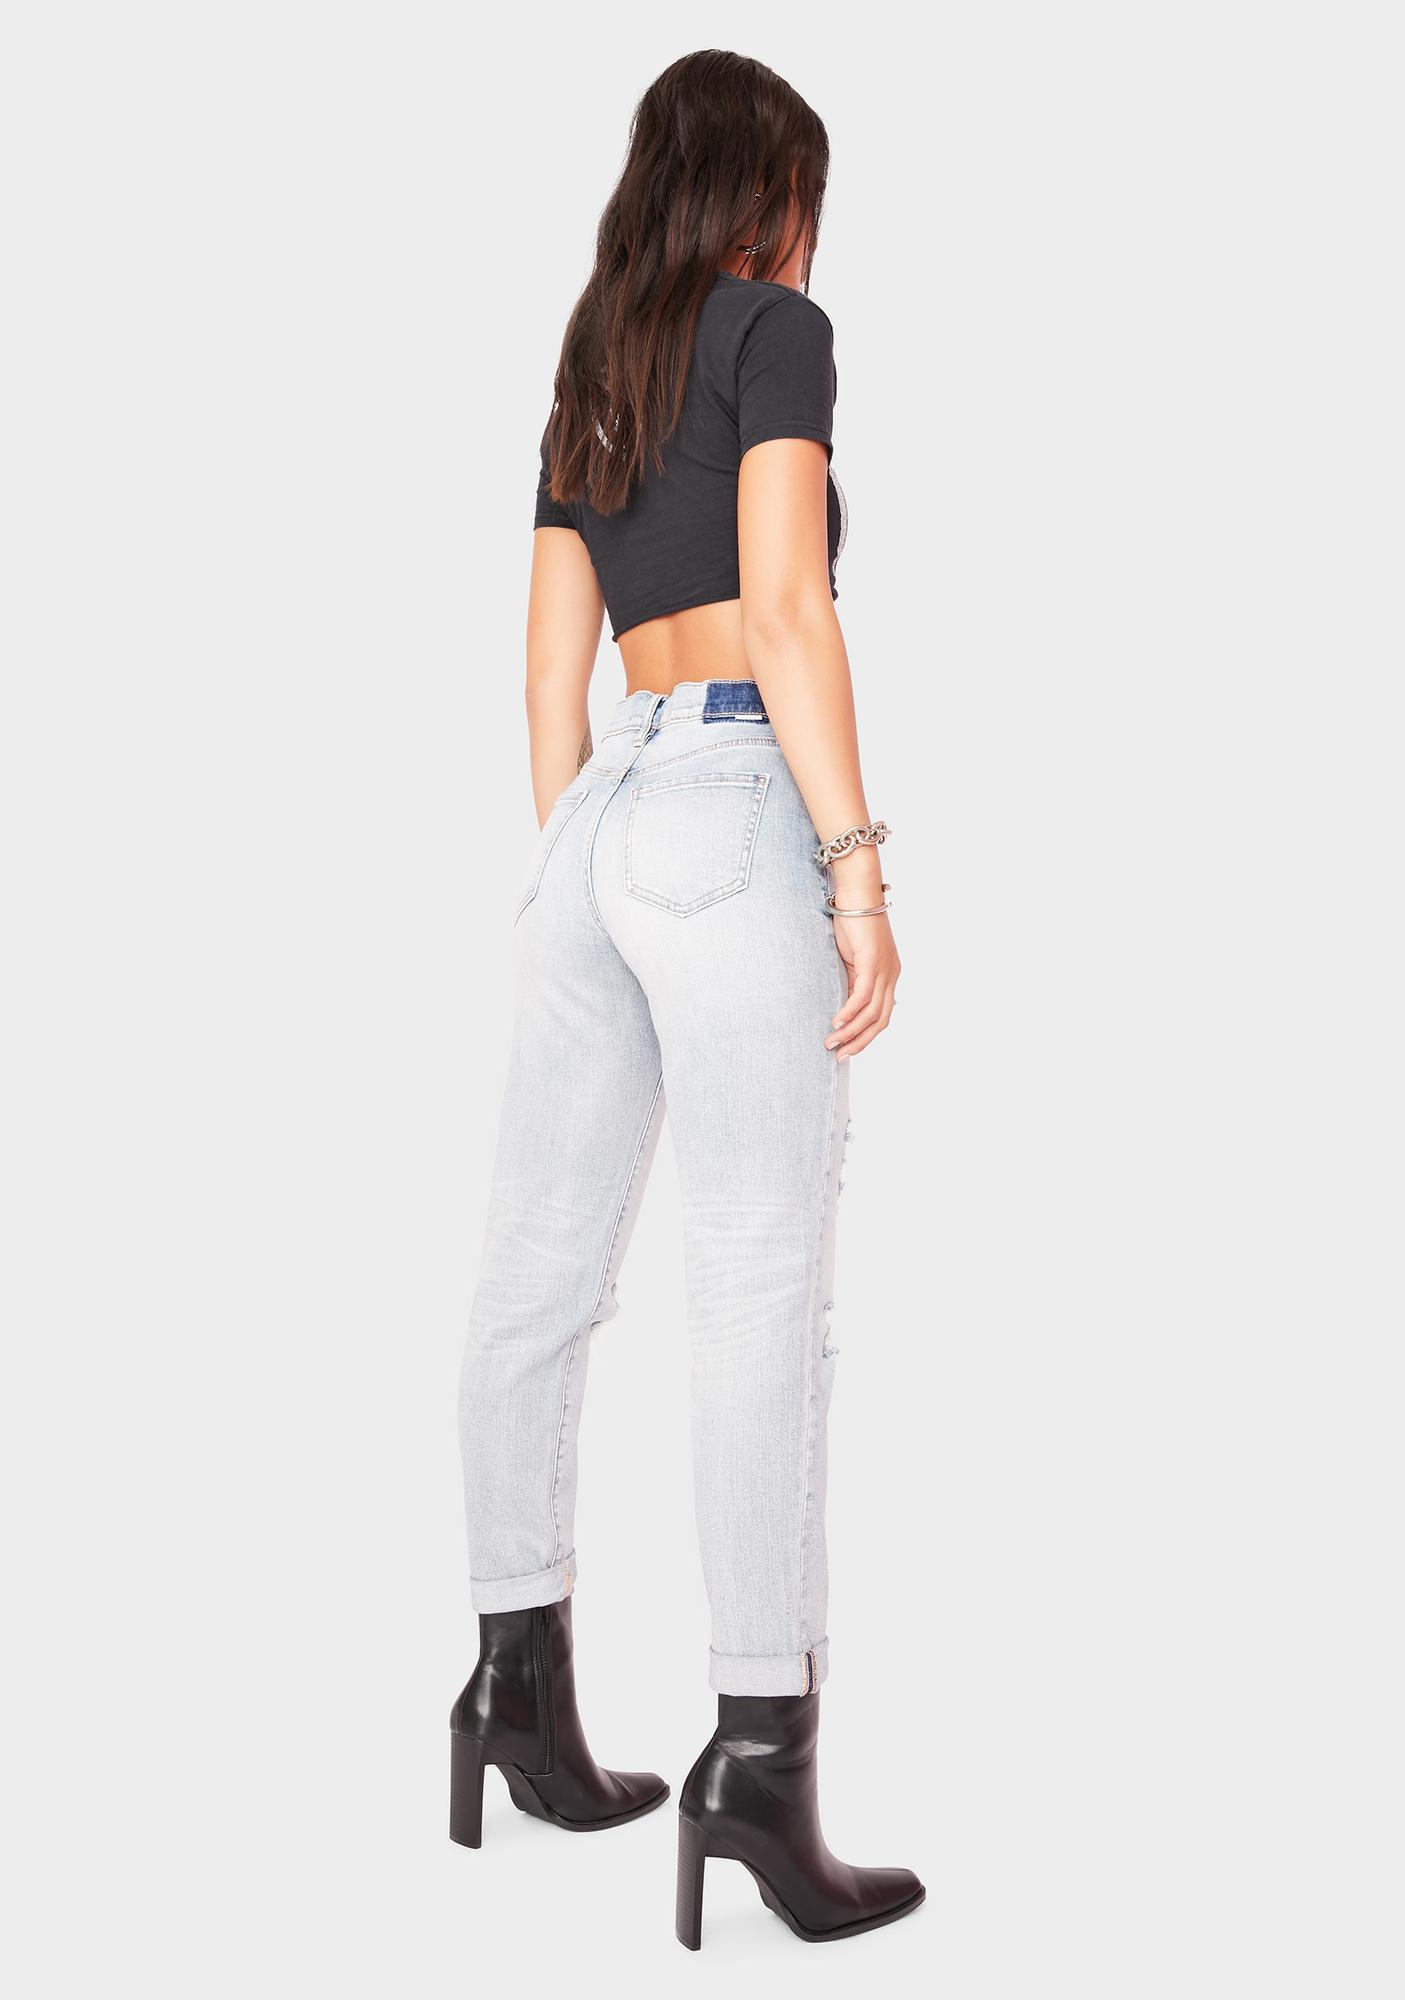 Daze Loverboy High Rise Boyfriend Jeans